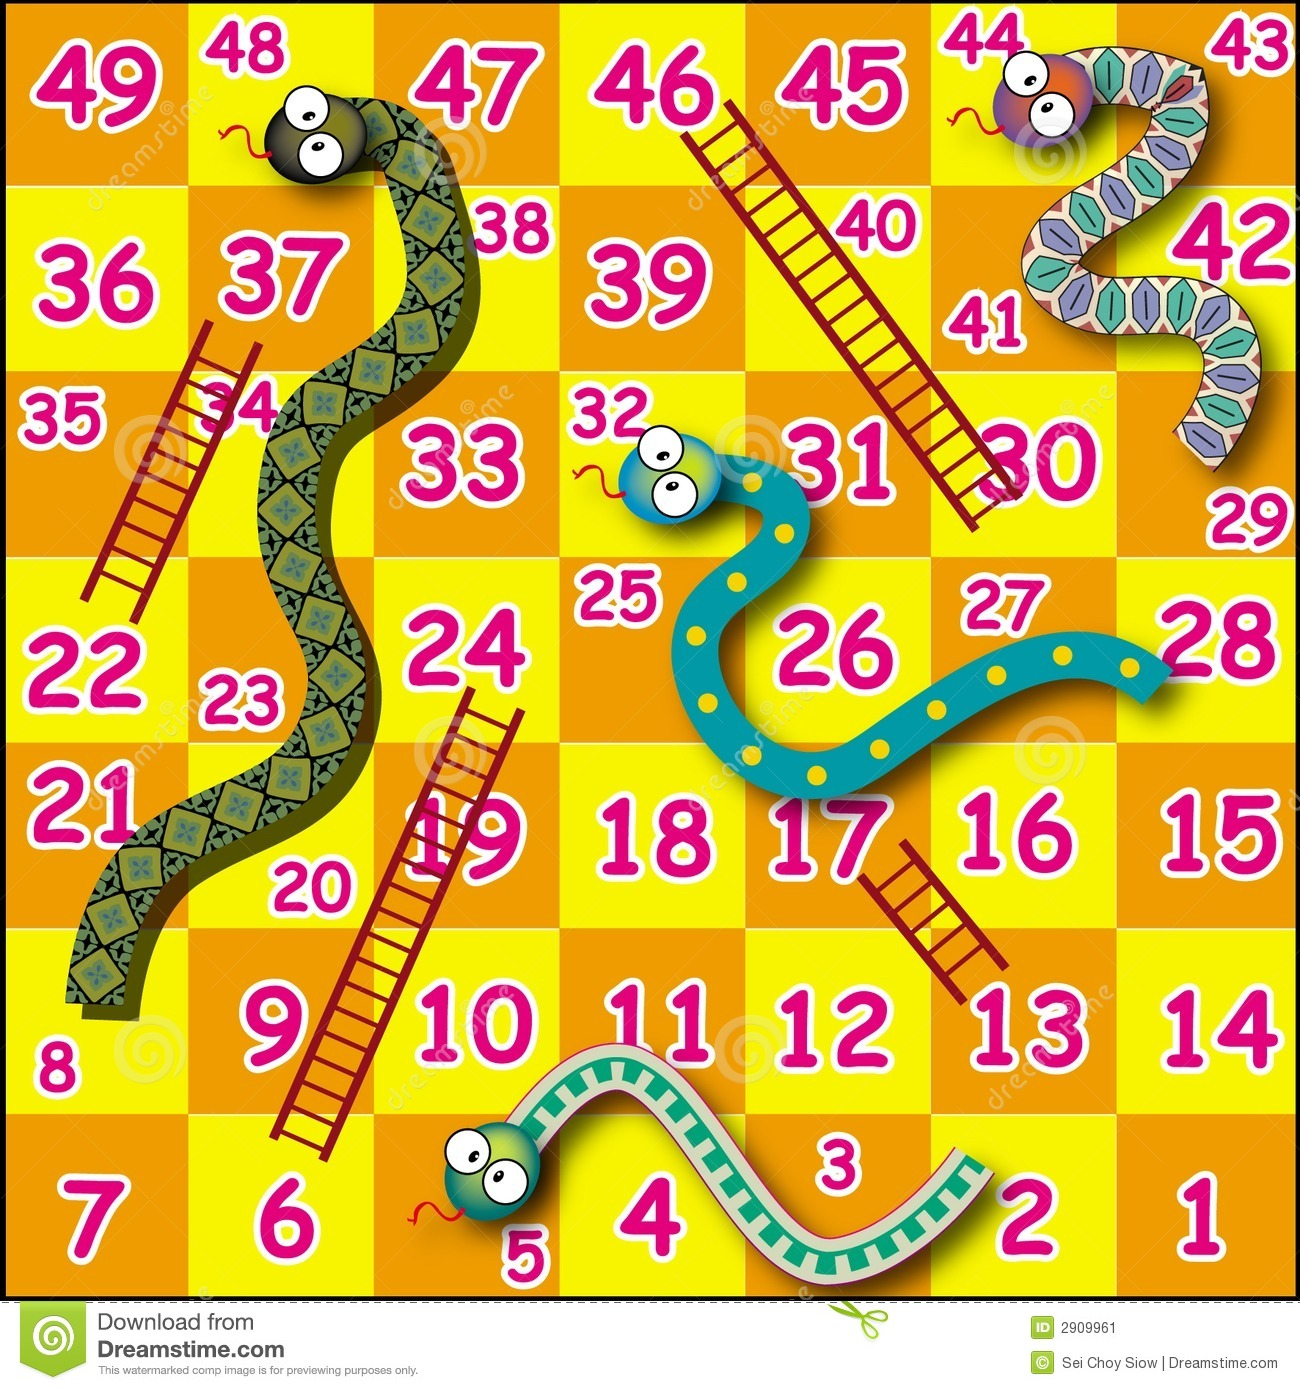 3d snakes and ladders instructions pdf